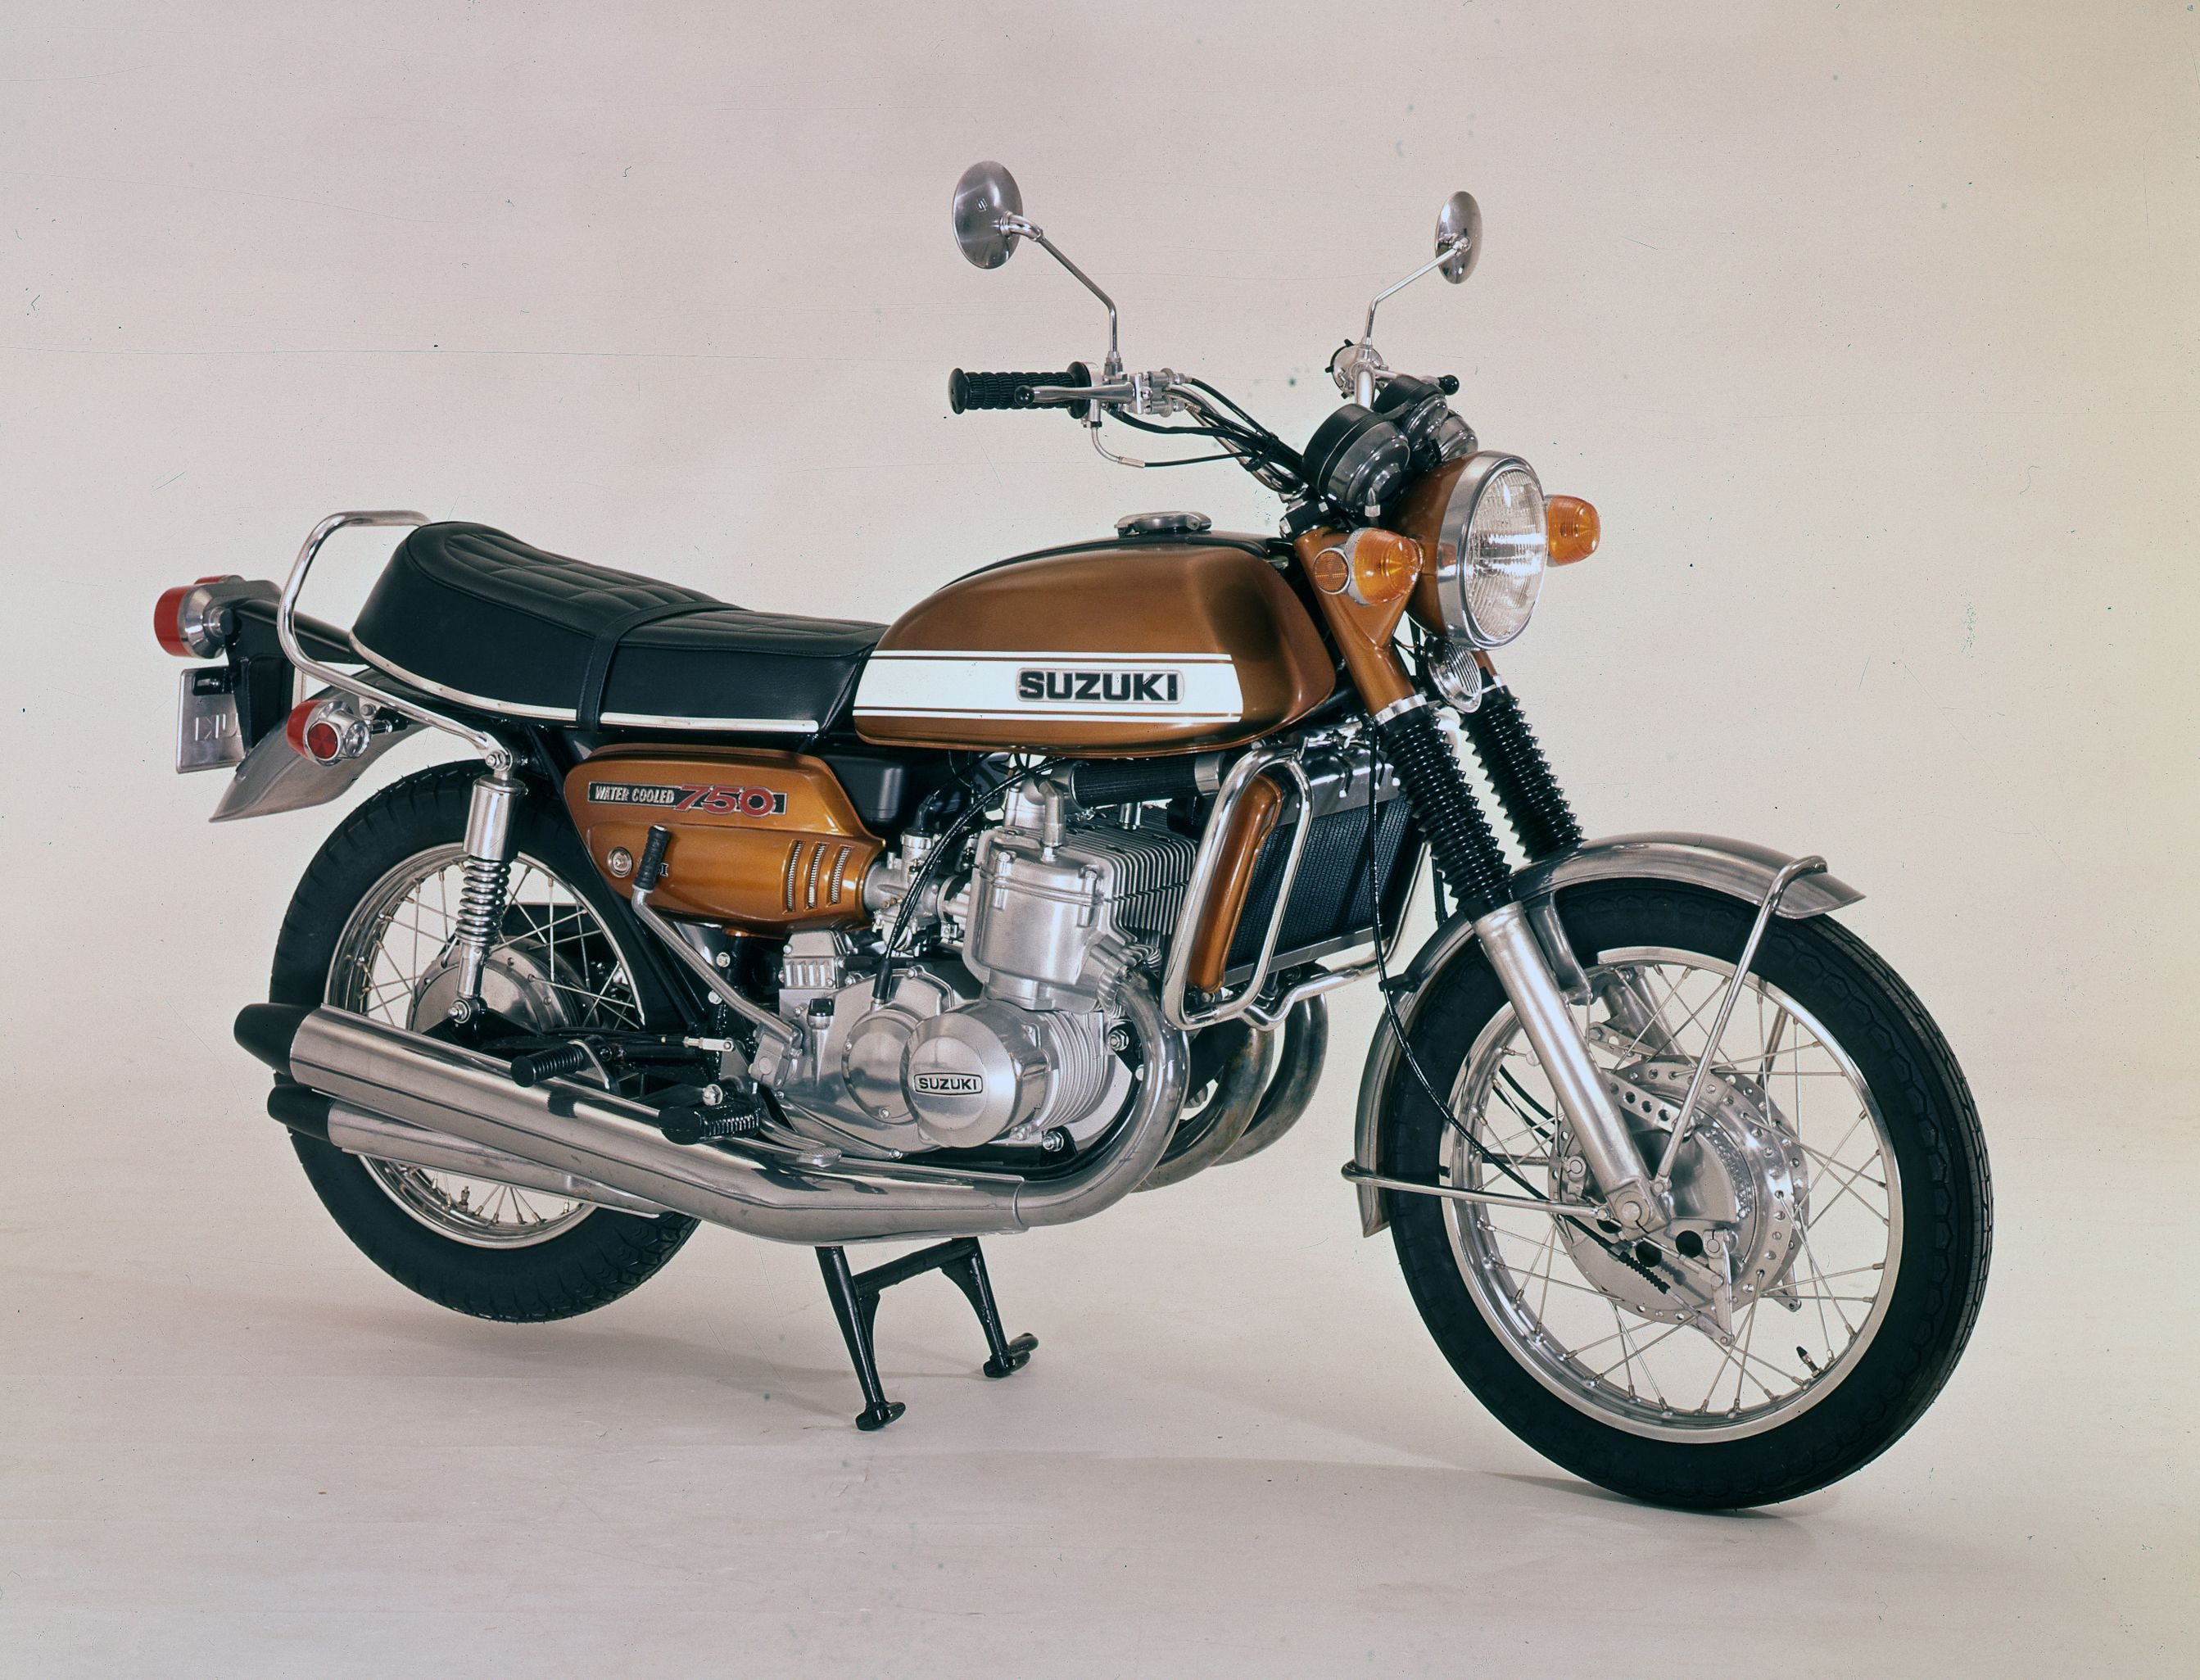 Motor Classic To Show Ten Suzuki Gt750 S At The Show Suzuki Gt 750 Suzuki Motorcycle Motorcycle